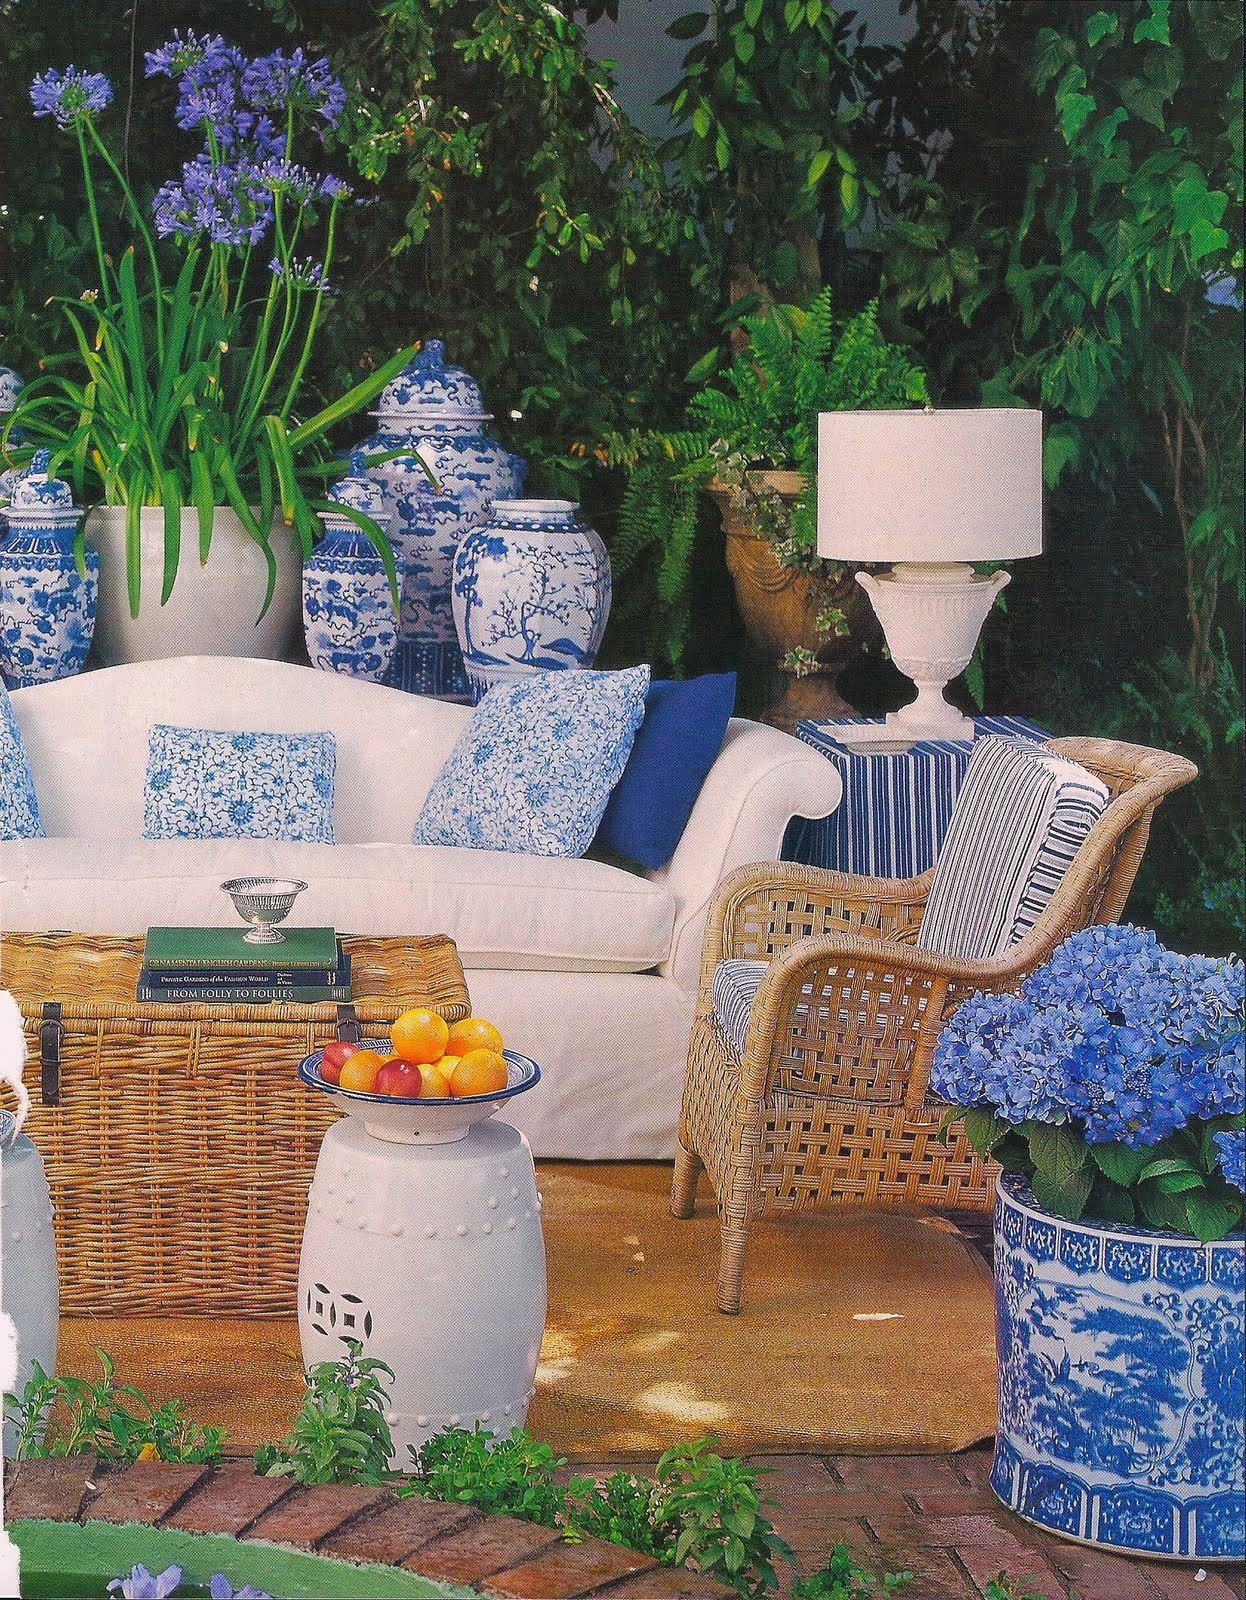 Decorating With Blue And White Outdoors Blue Decor Garden